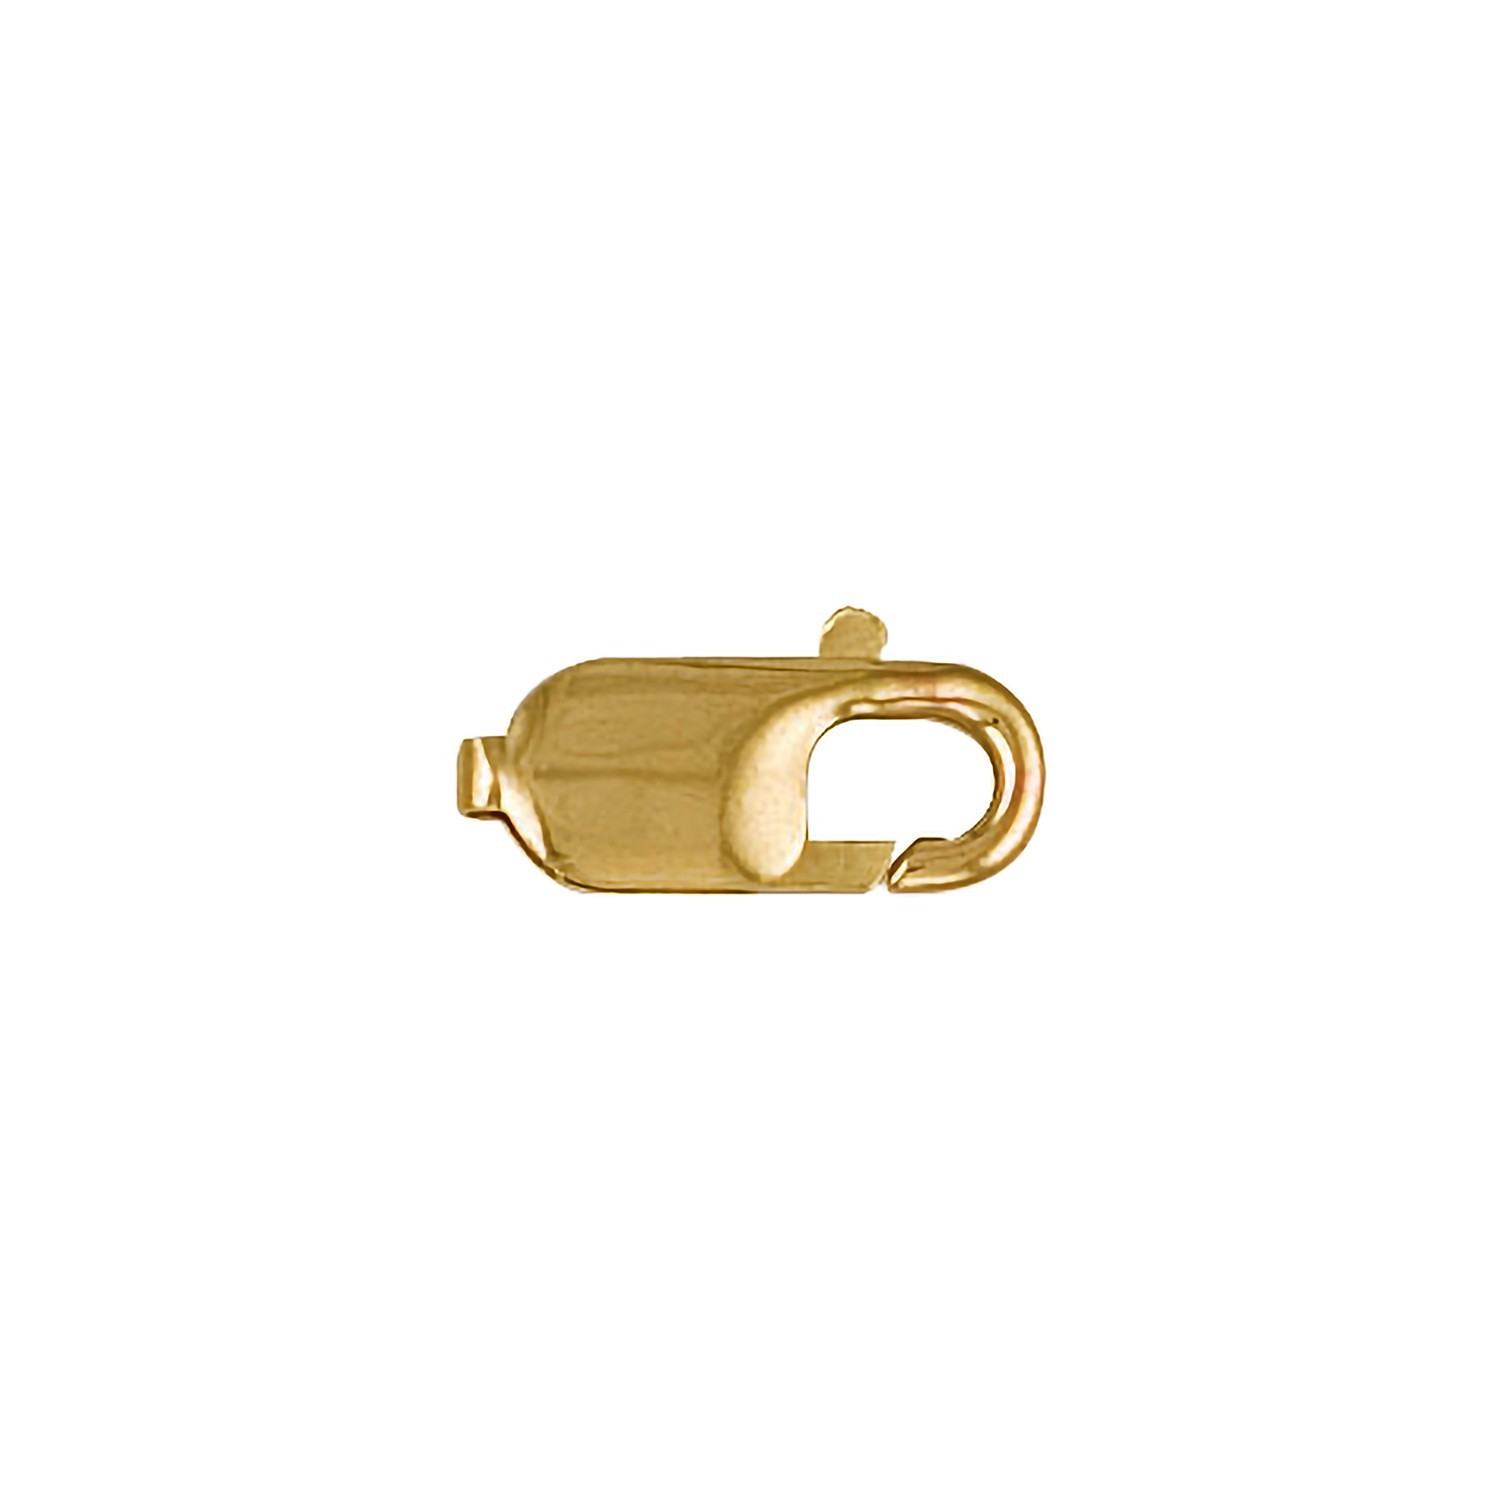 Y/G 13mm Trigger Clasp (Pack of 3)